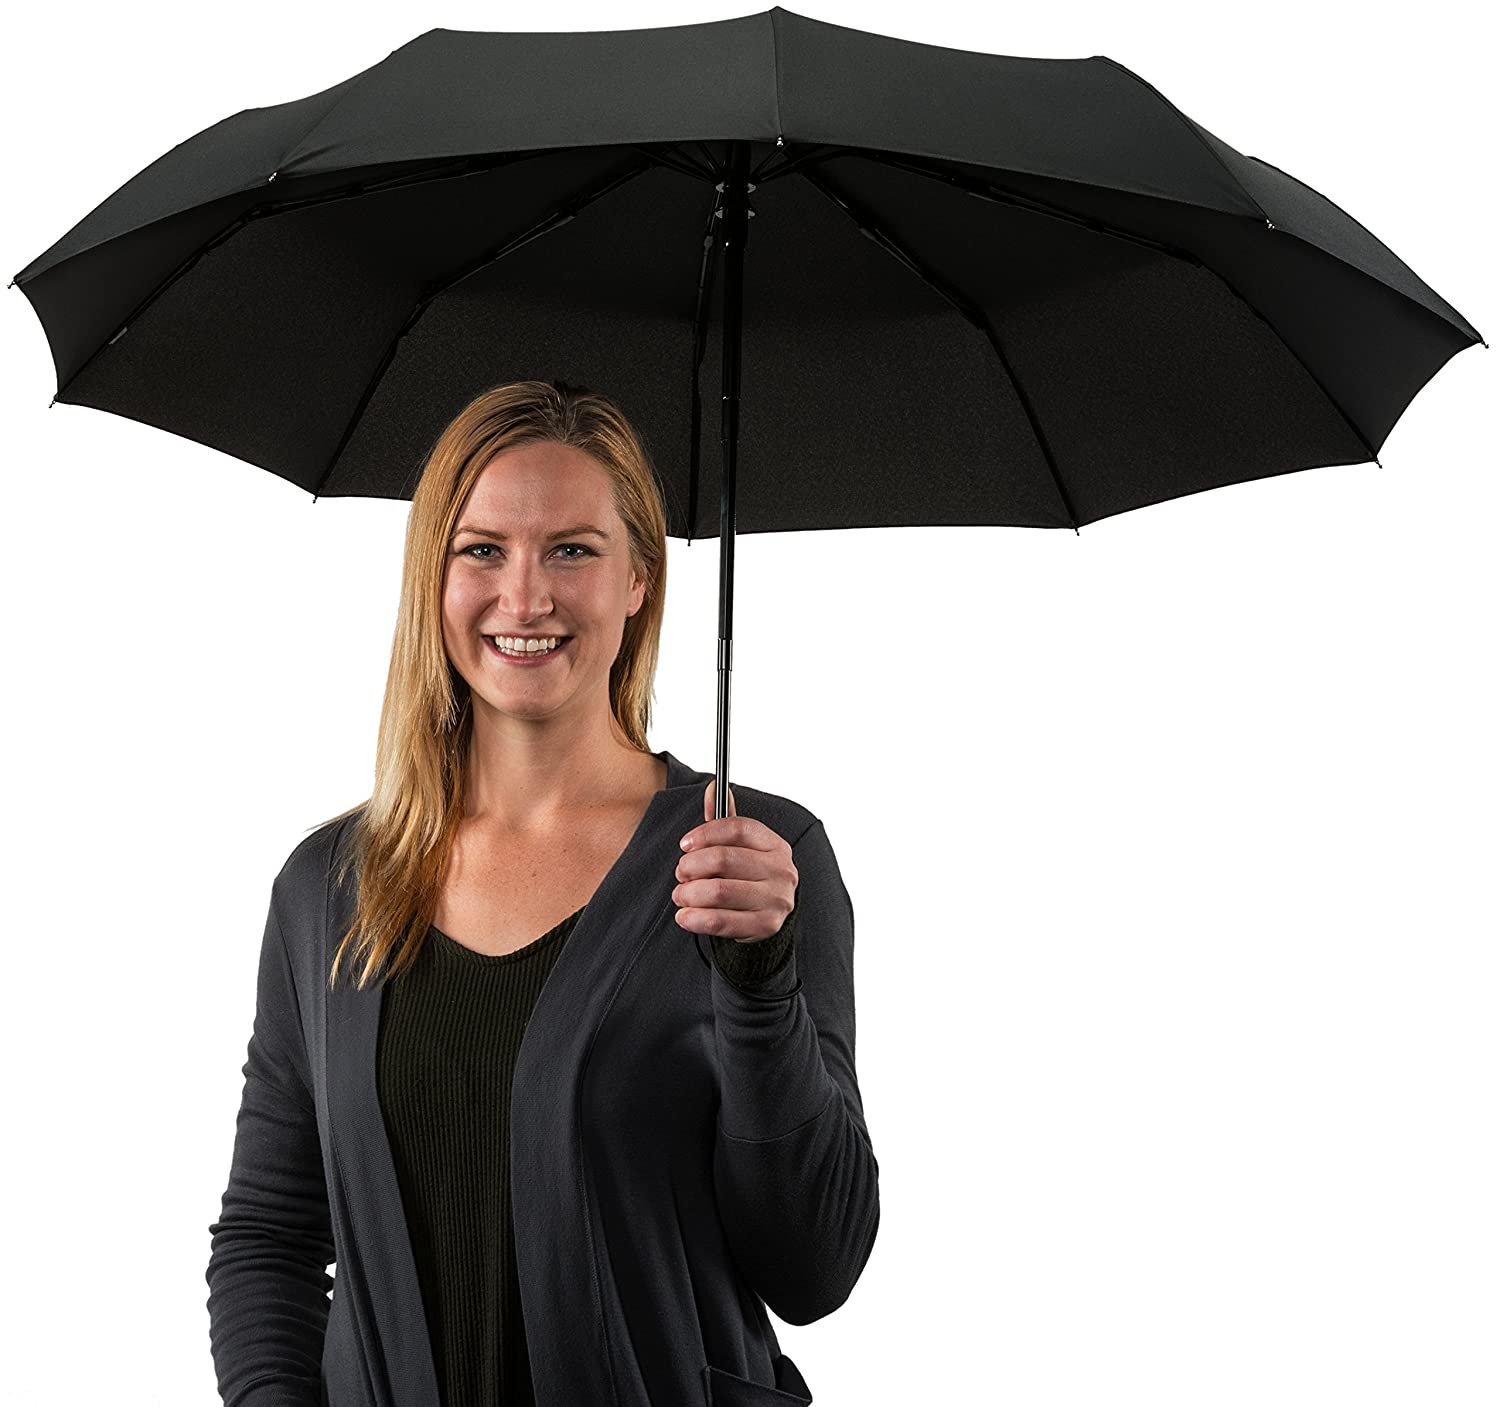 Amazon.com: Crown Coast Black Travel Umbrella - 60 MPH Windproof Lightweight for Men Women and Kids, Compact Umbrellas: Clothing